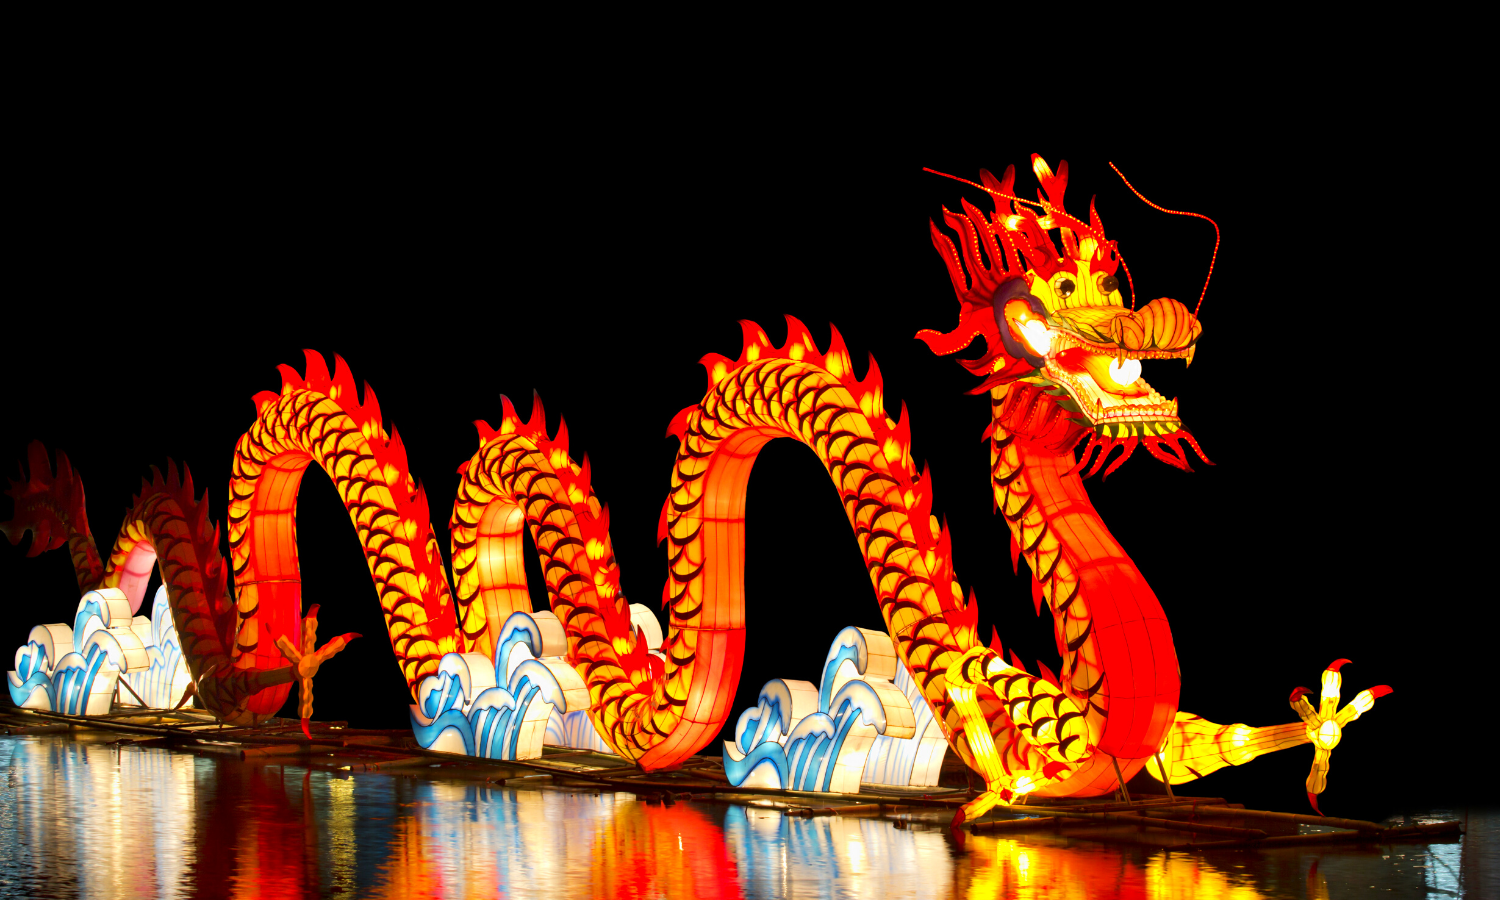 Chinese dragon lit up